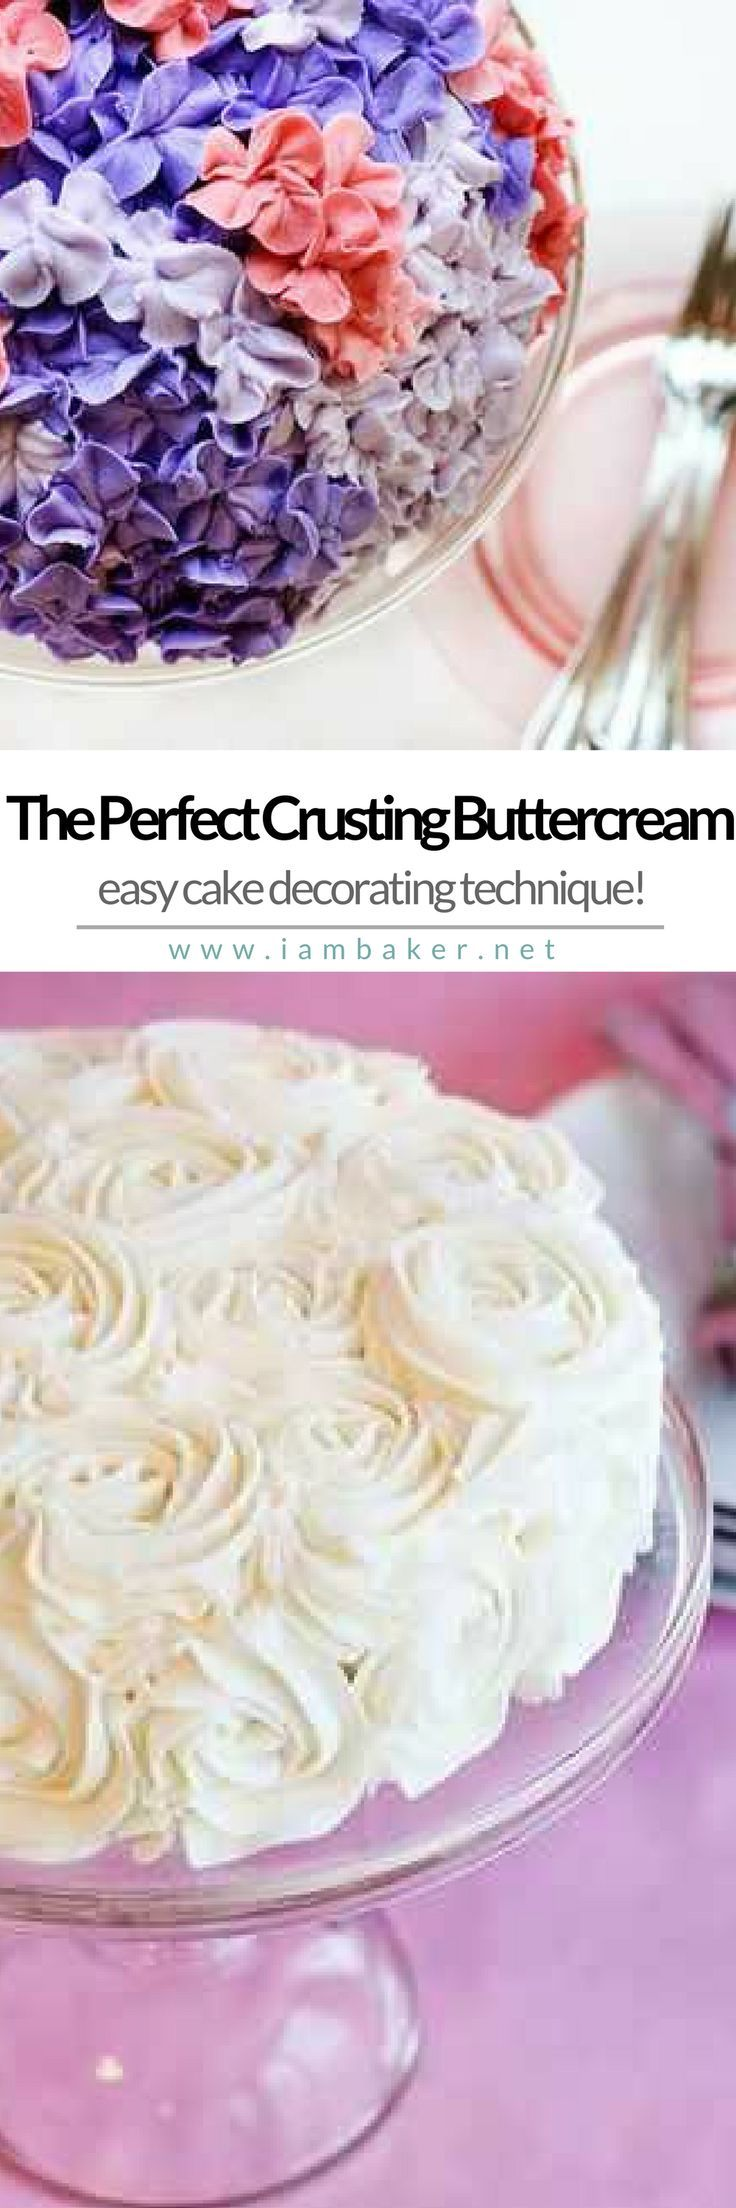 THE PERFECT CRUSTING BUTTERCREAM | Looking for buttercream recipes? You can also use this sweet decorating technique for your favorite cakes and cupcakes! For more simple and easy dessert recipes to make, check us out at #iambaker. #foodlover #desserts #yummydesserts #recipeoftheday #buttercreamrecipes #cakedecorating